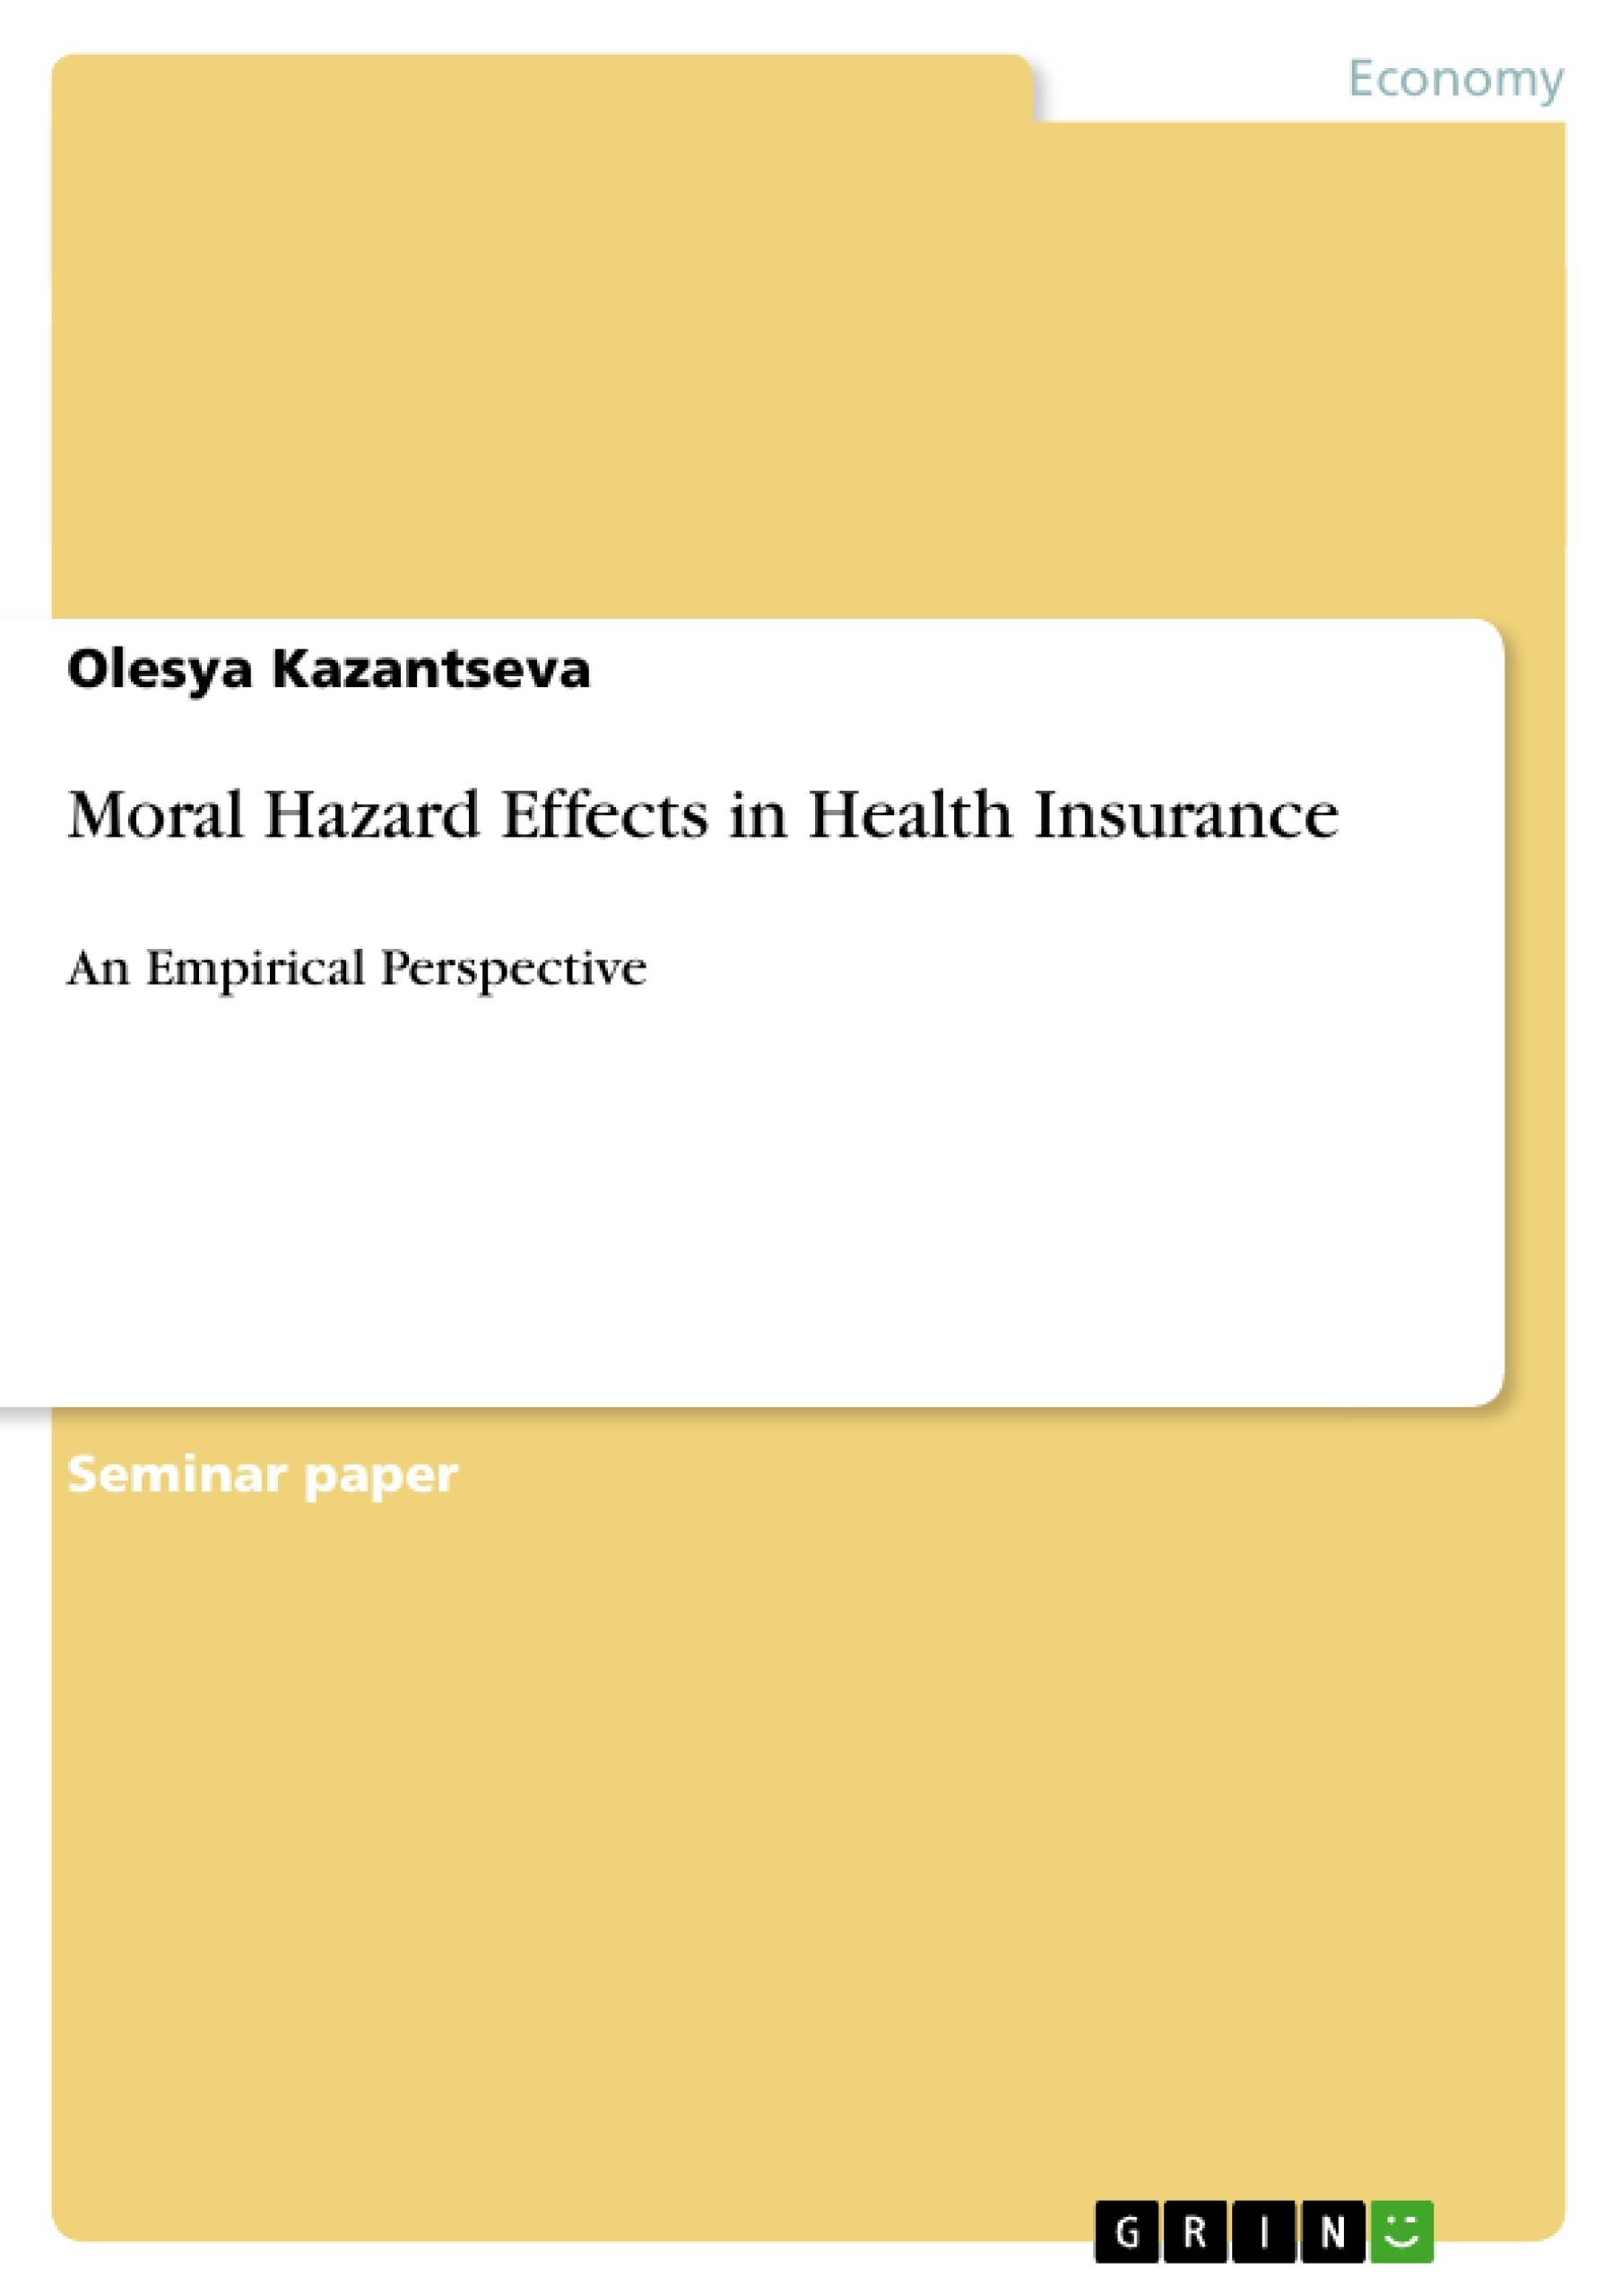 moral hazard essay In this essay, definition of moral hazard and examples from insurance, banking and management perspectives are discussed the commons of these examples include the parties involved in the moral hazard, the uncontrollable risky behaviour of one party whose benefits are guaranteed and the social costs which the problem brings.